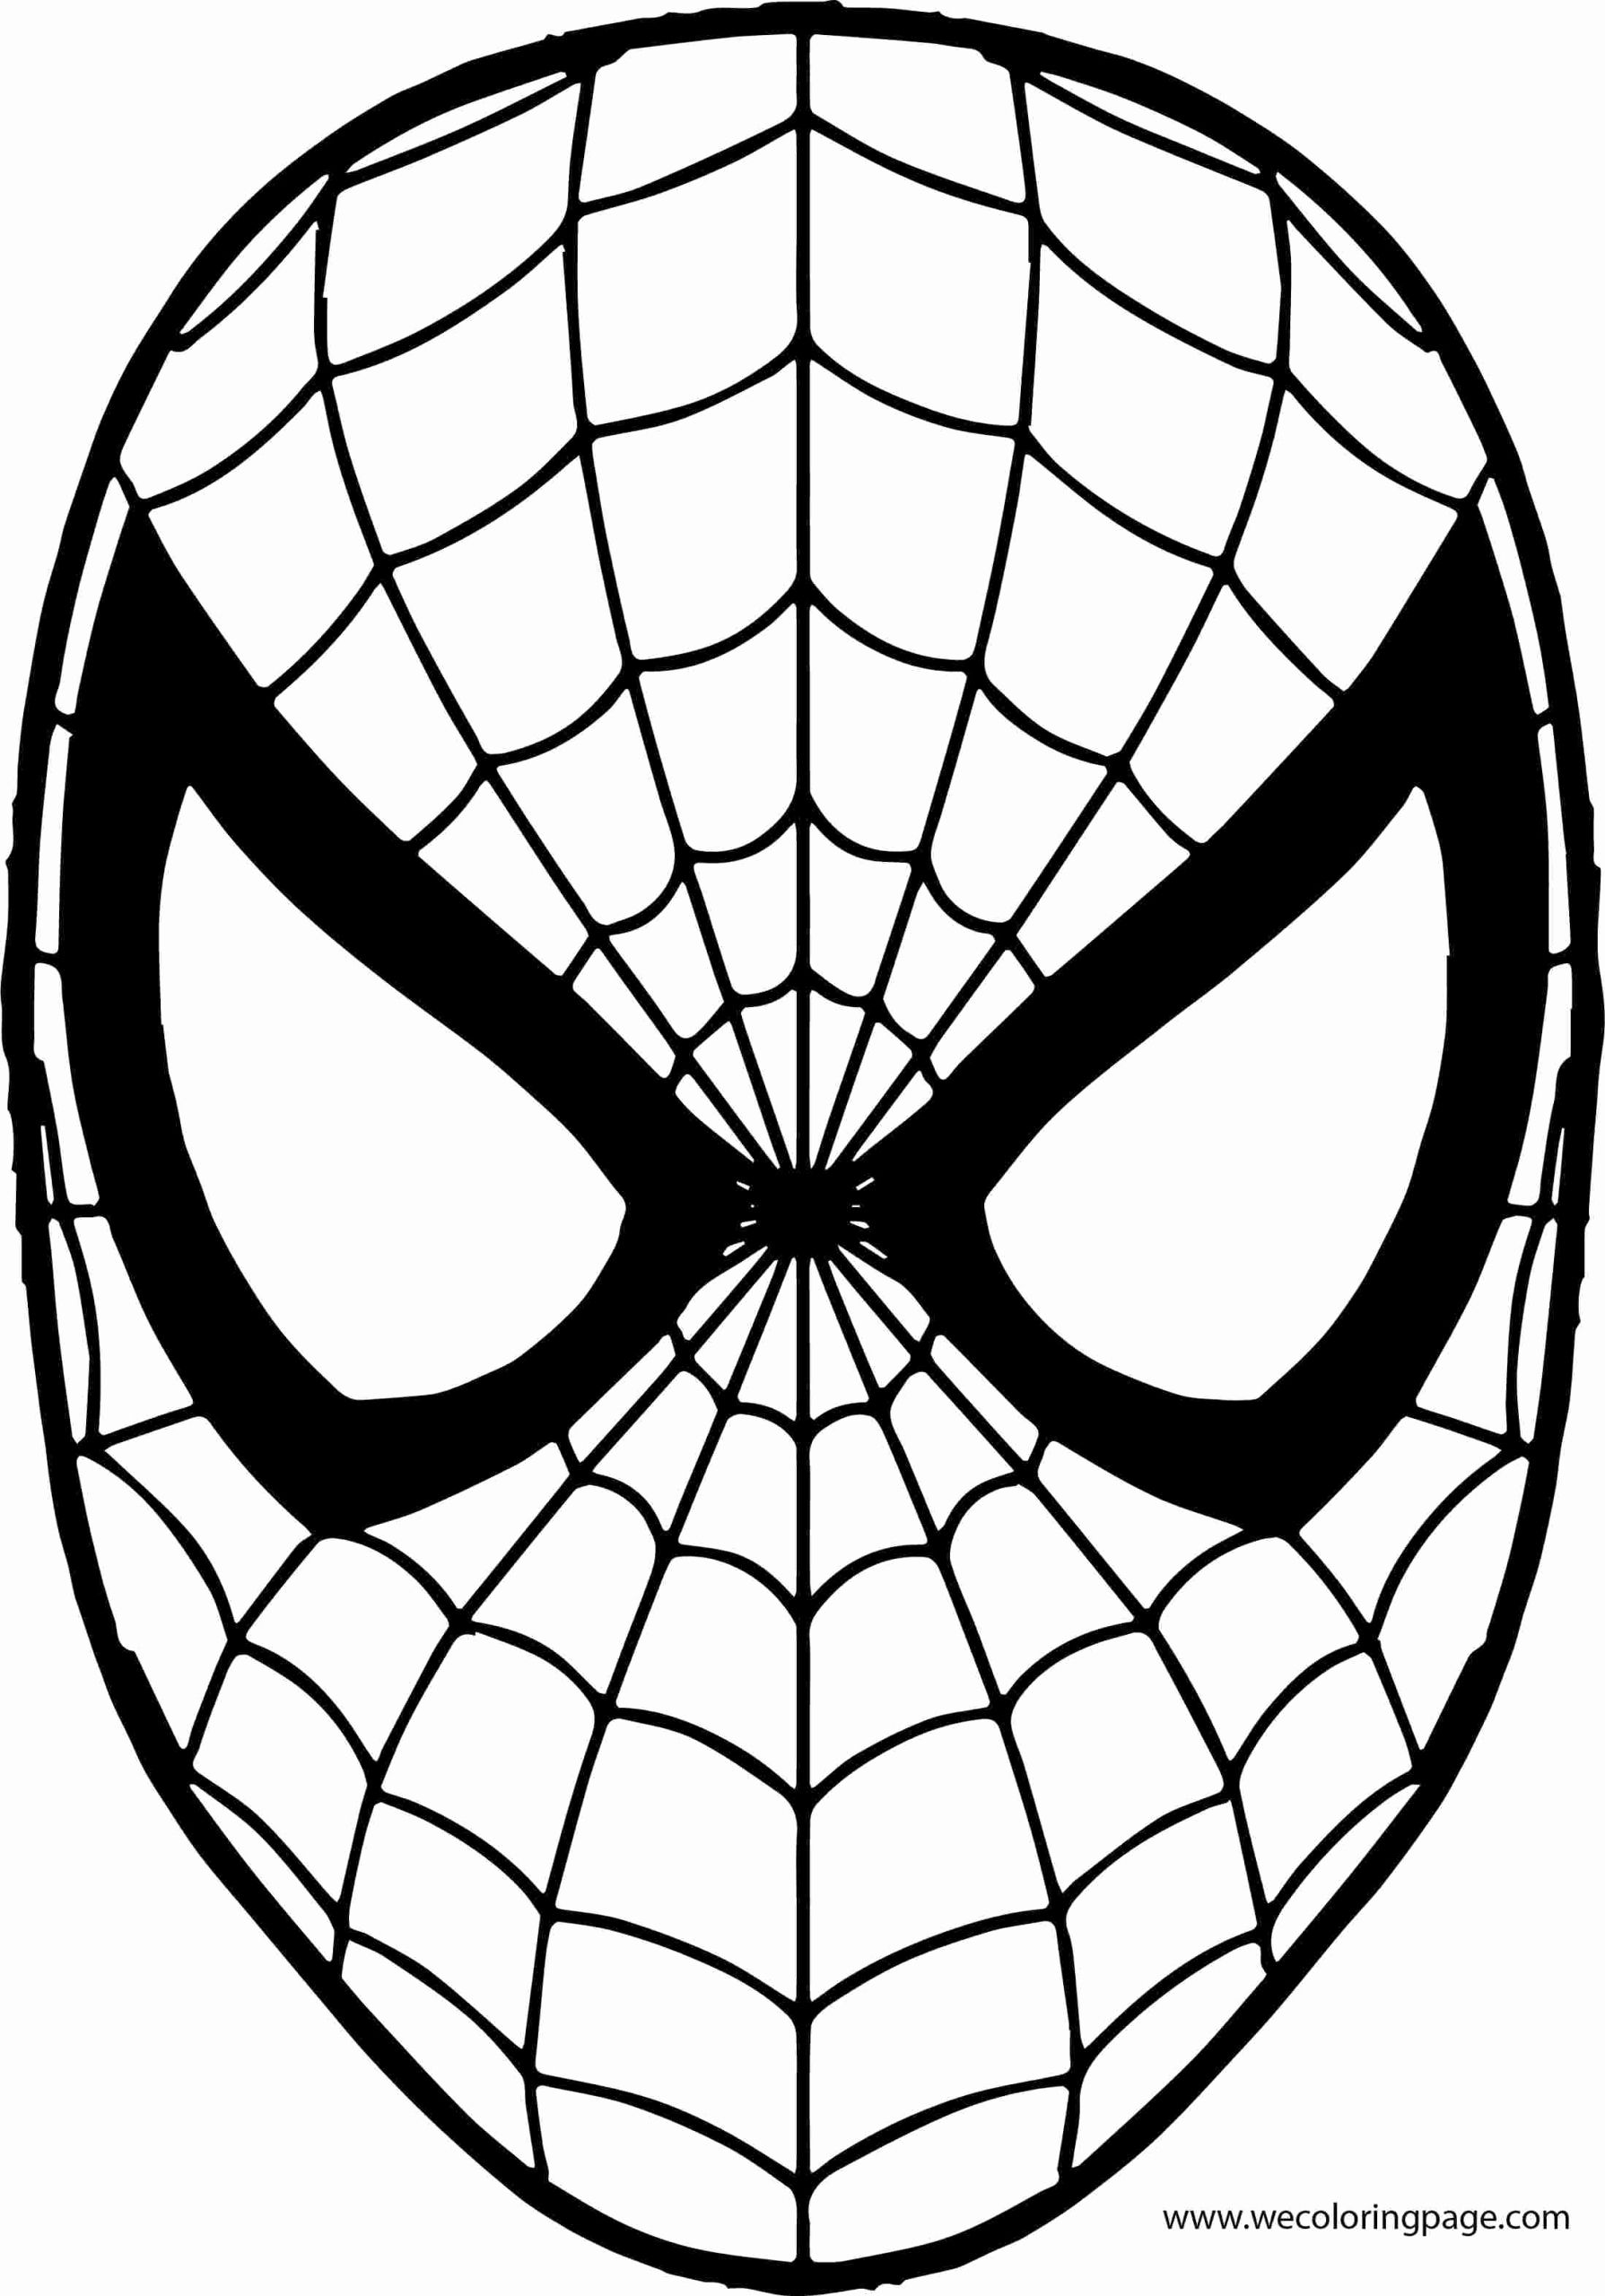 Baby Spiderman Coloring Pages For Kids Spiderman Coloring Spiderman Mask Coloring Mask